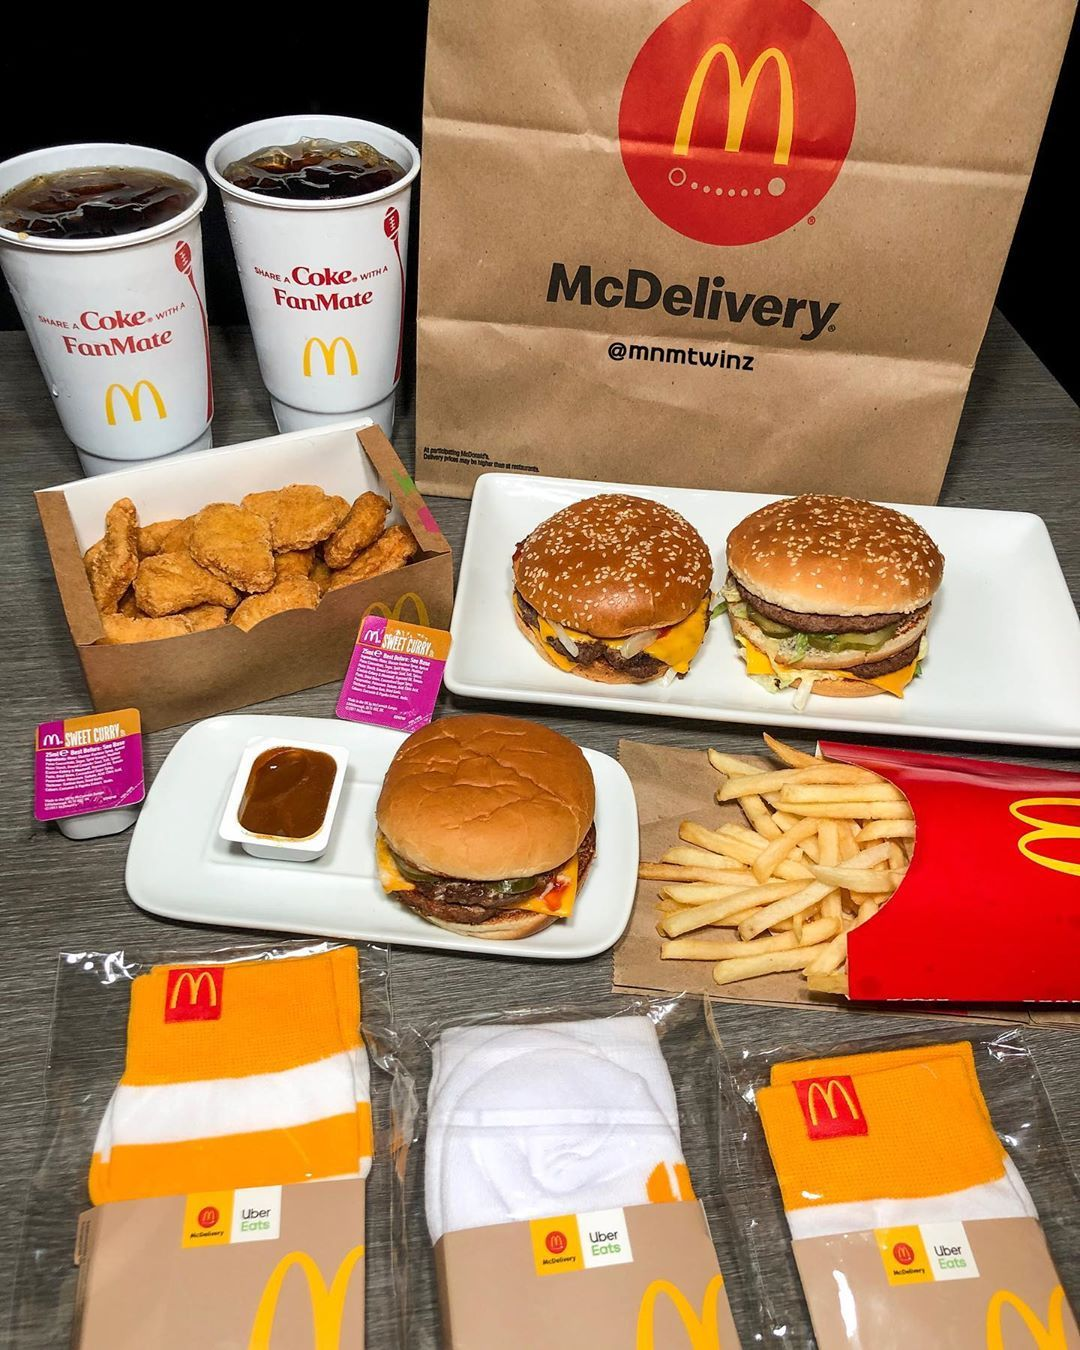 McDelivery mcdonalds (With images) Food